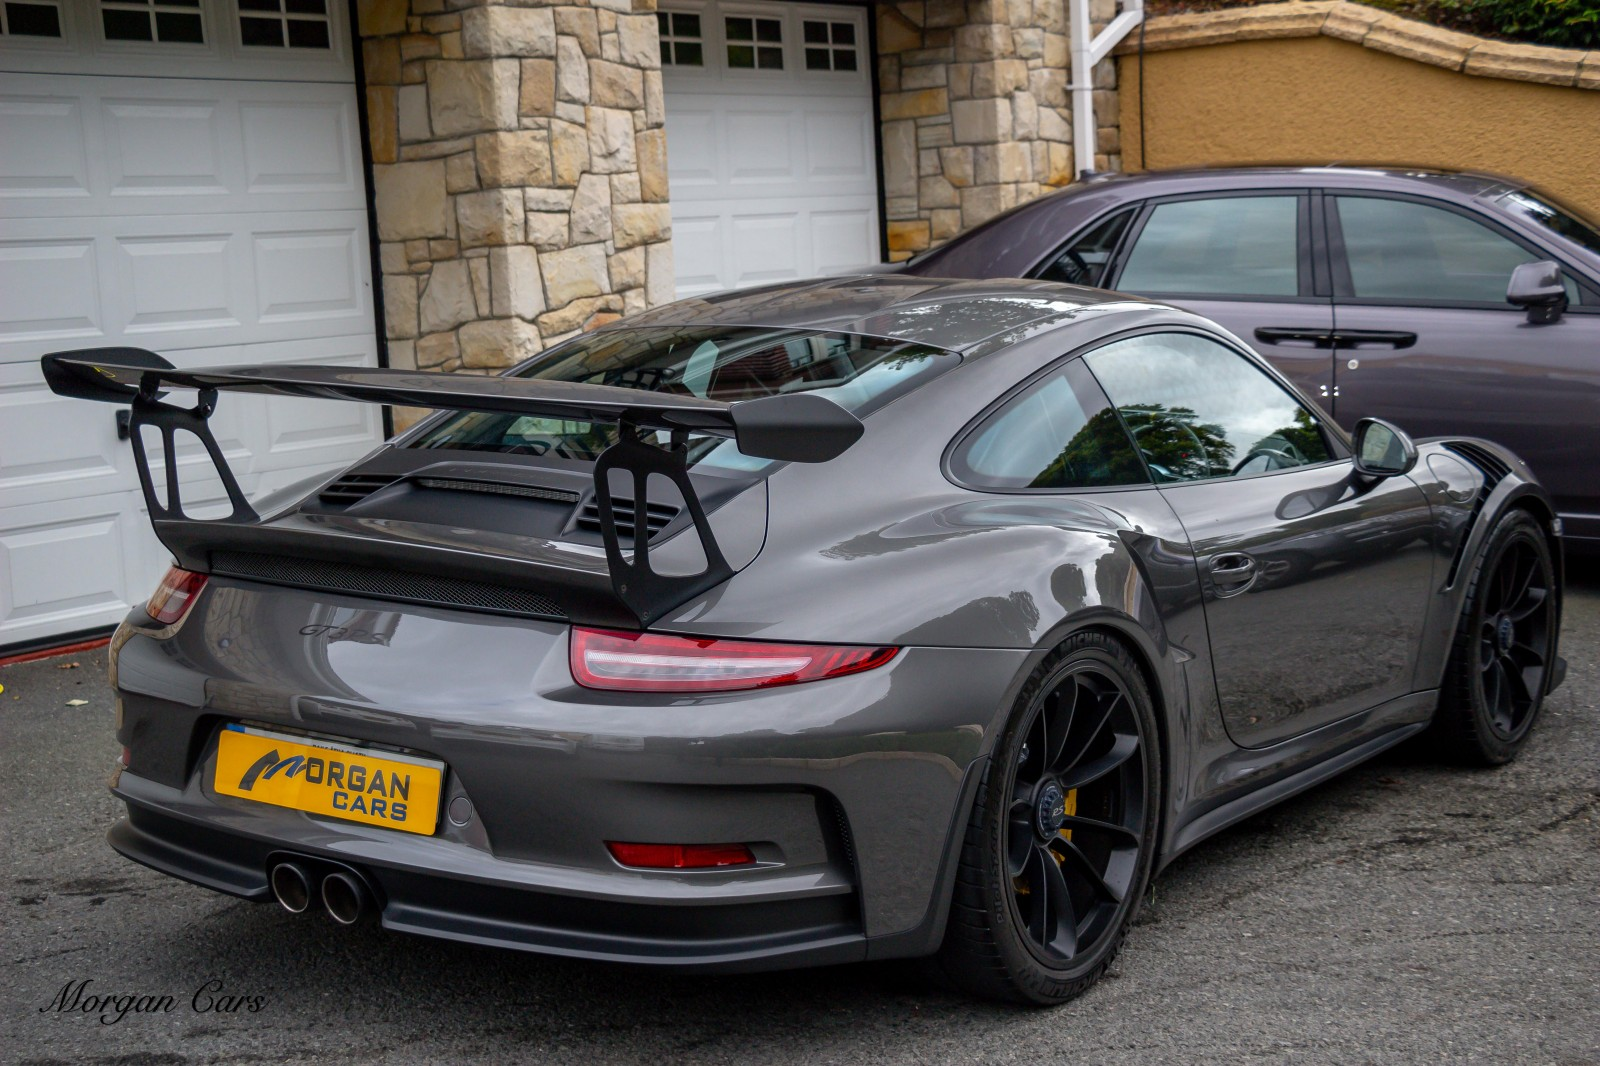 2016 Porsche 911 GT3 RS Petrol Semi Auto – Morgan Cars 9 Mound Road, Warrenpoint, Newry BT34 3LW, UK full